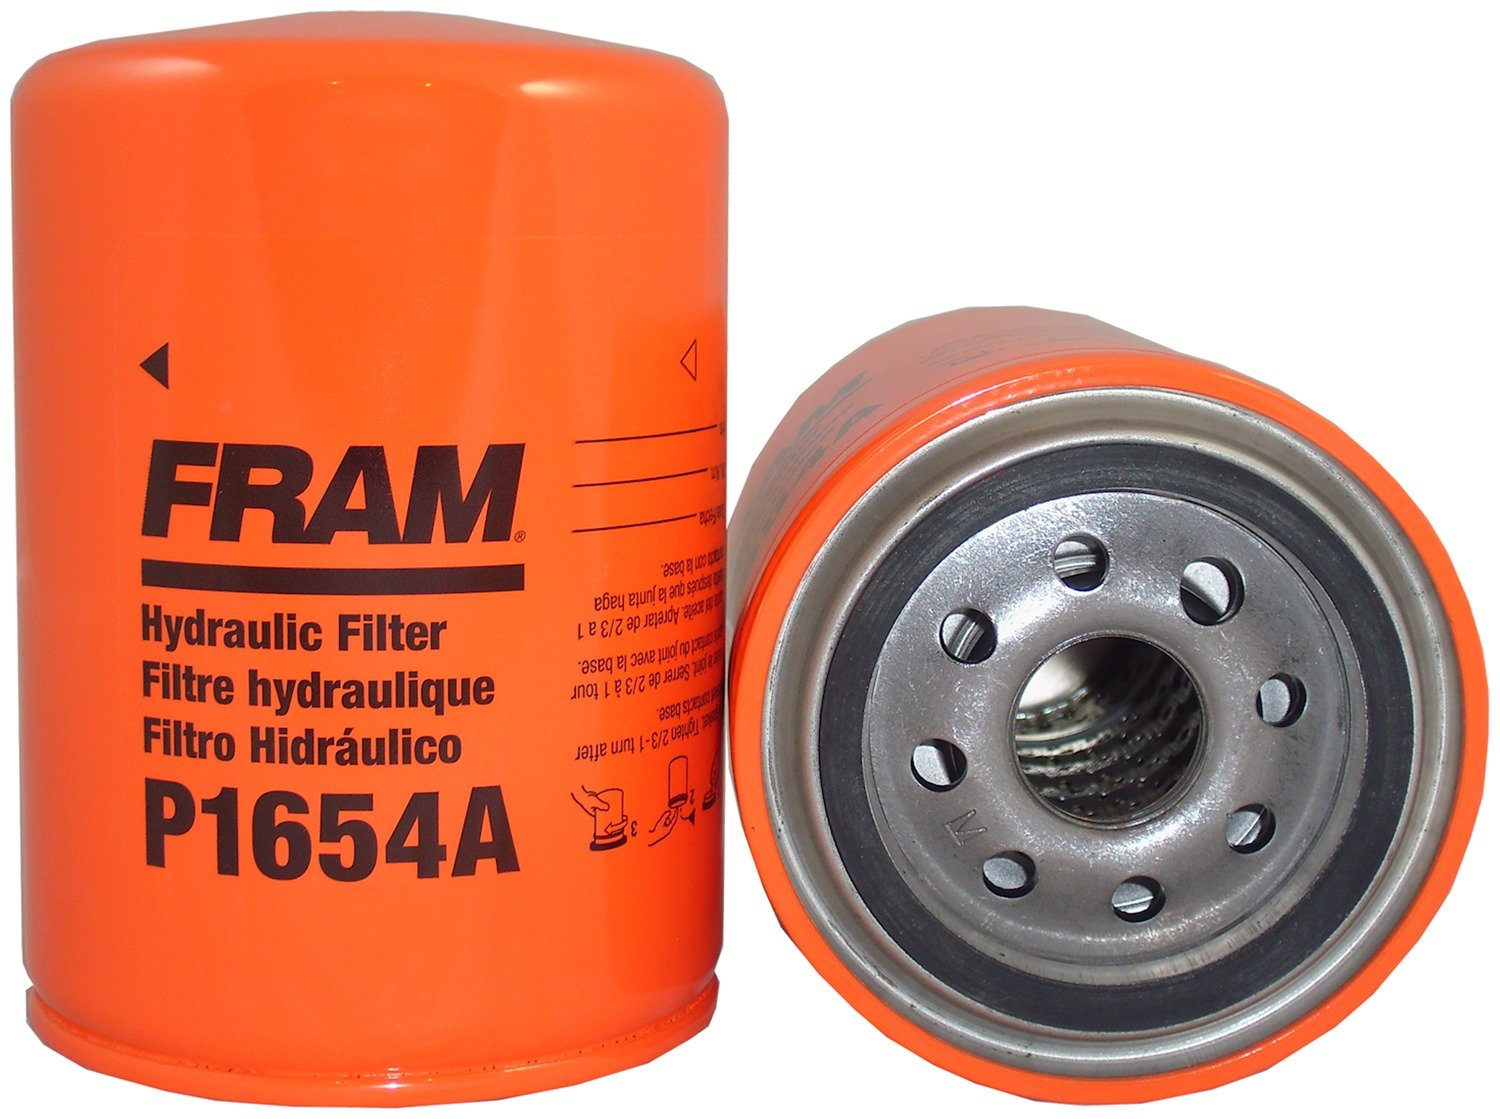 Fram fuel filters cross reference free download wiring diagram amazon com fram p1654a hydraulic filter automotive fram fuel filters cross reference 33 purolator cross reference chart fram fuel filters cross reference nvjuhfo Image collections